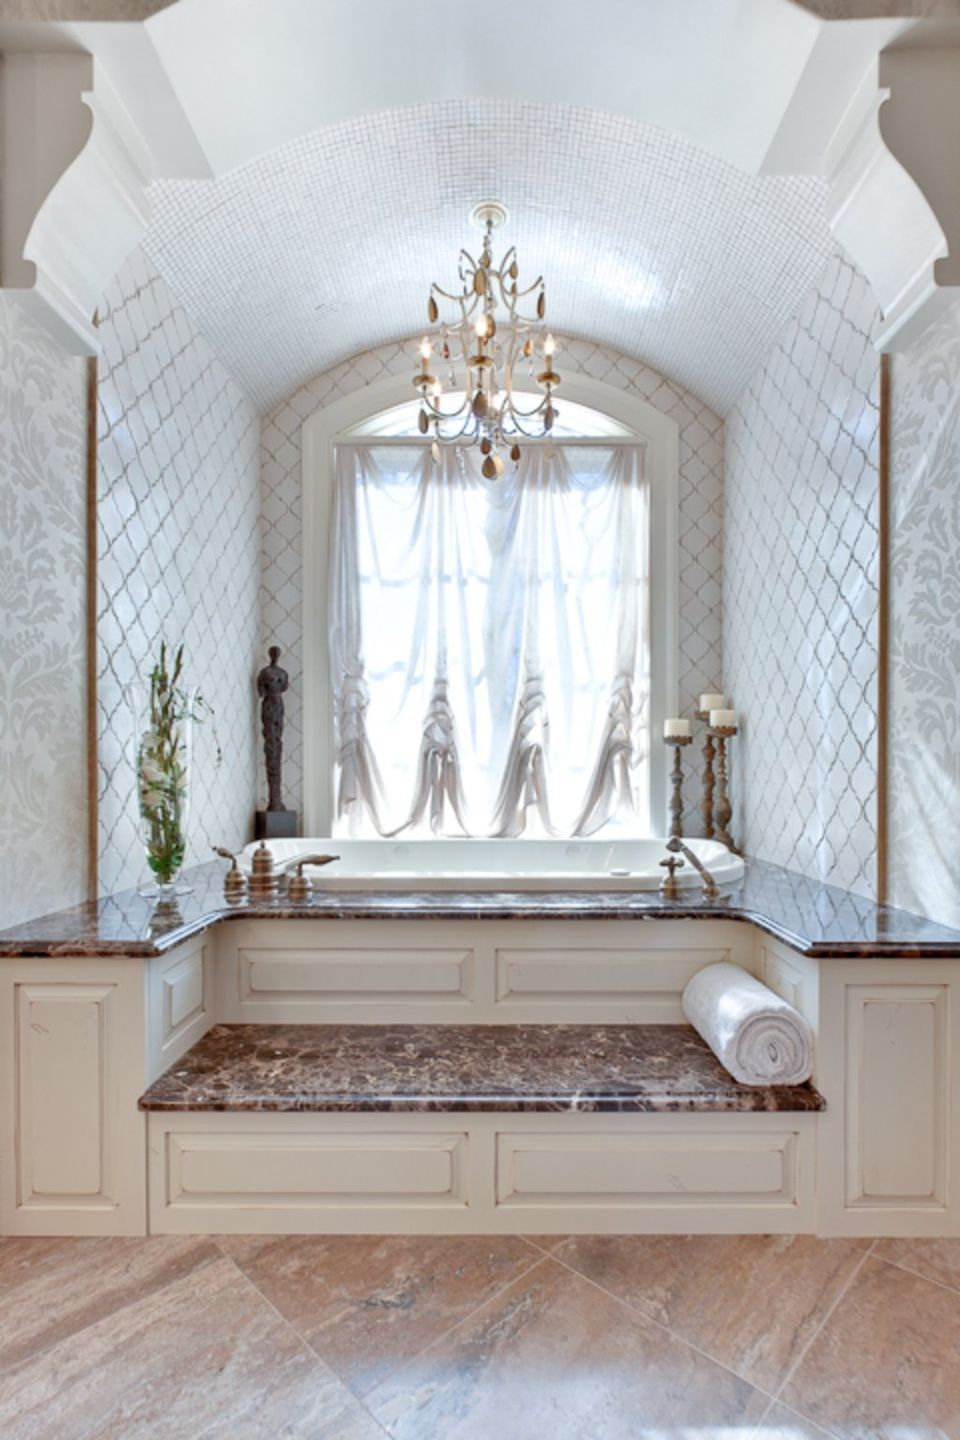 jeff lewis design - Google Search | Luxury homes in ...